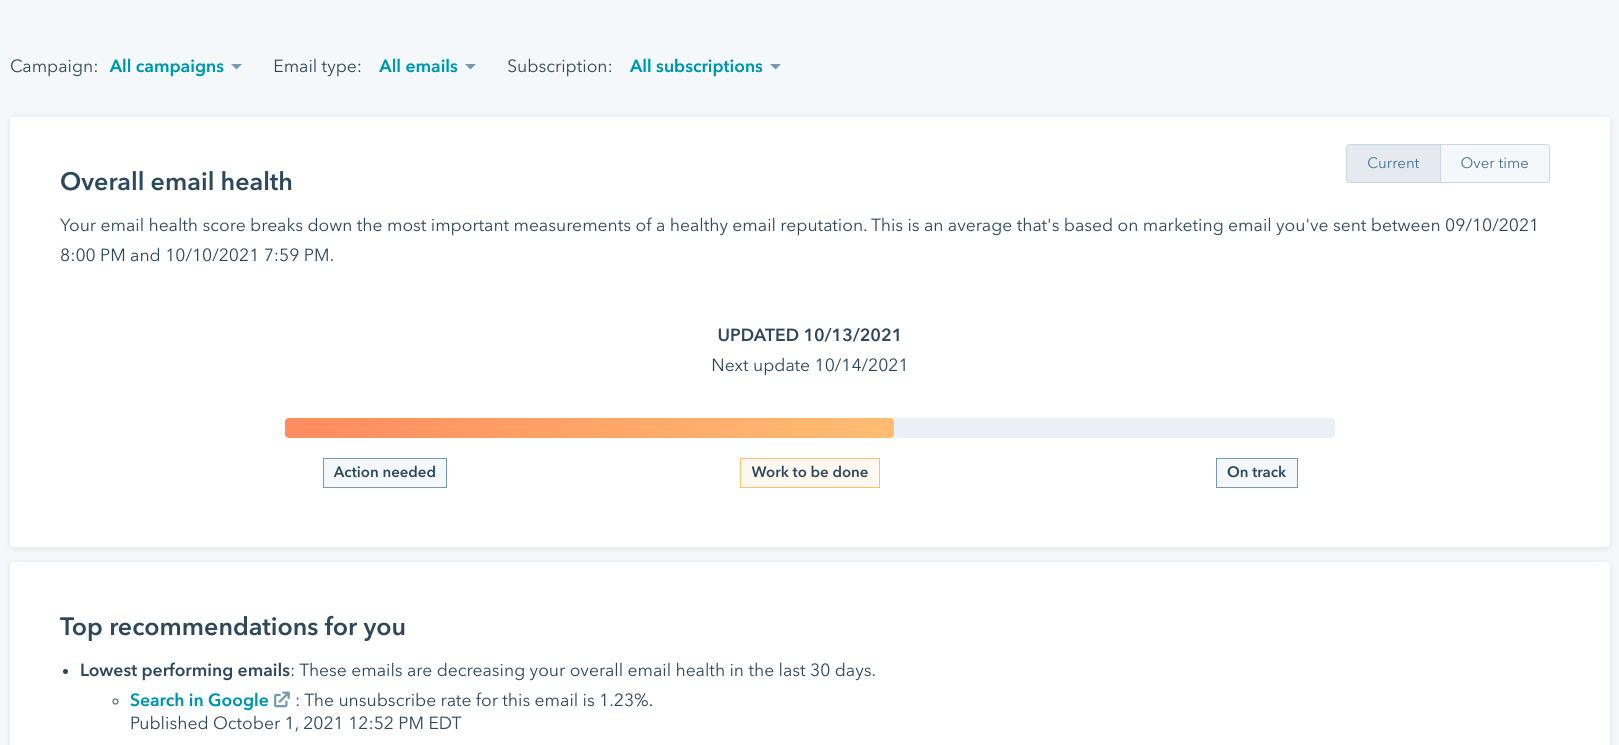 HubSpot's email health tool